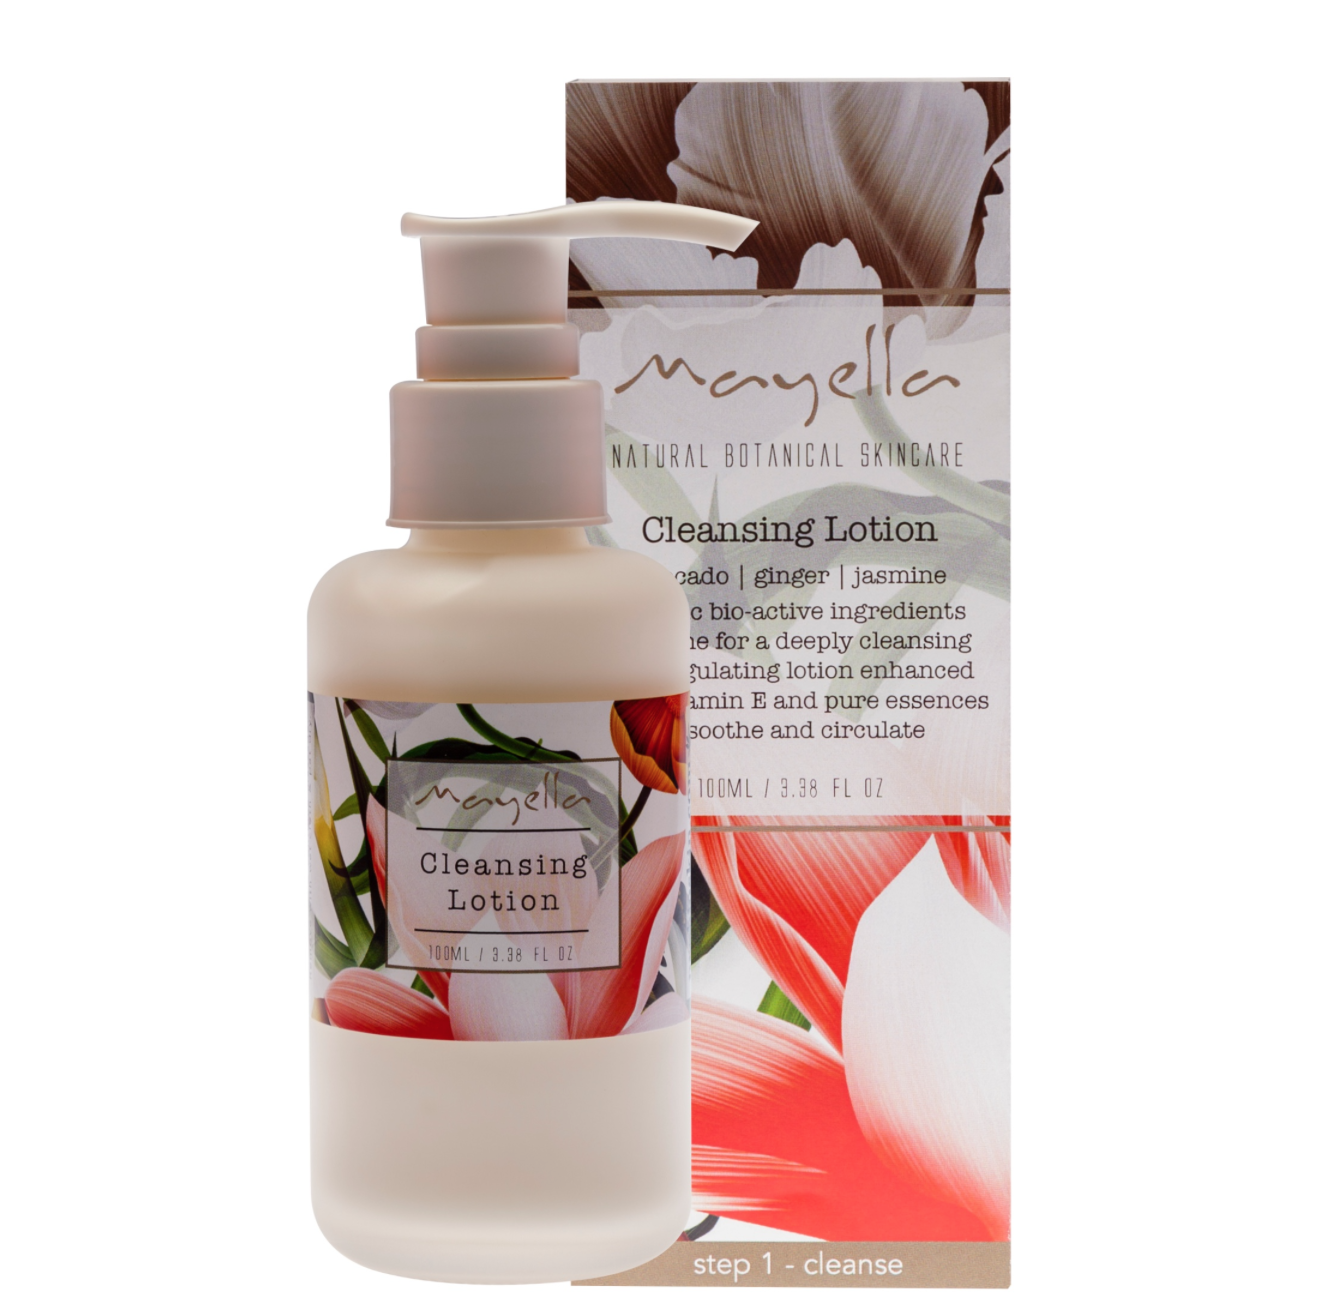 avocado   ginger   jasmine Organic bio-active ingredients combine for a deeply cleansing, refining and regulating cleansing lotion with hydrating alpha hydroxy acids combining with antioxidant rich vitamin E to protect the cellular matrix and enhanced by uplifting pure essences to soothe, circulate, tone and decongest.